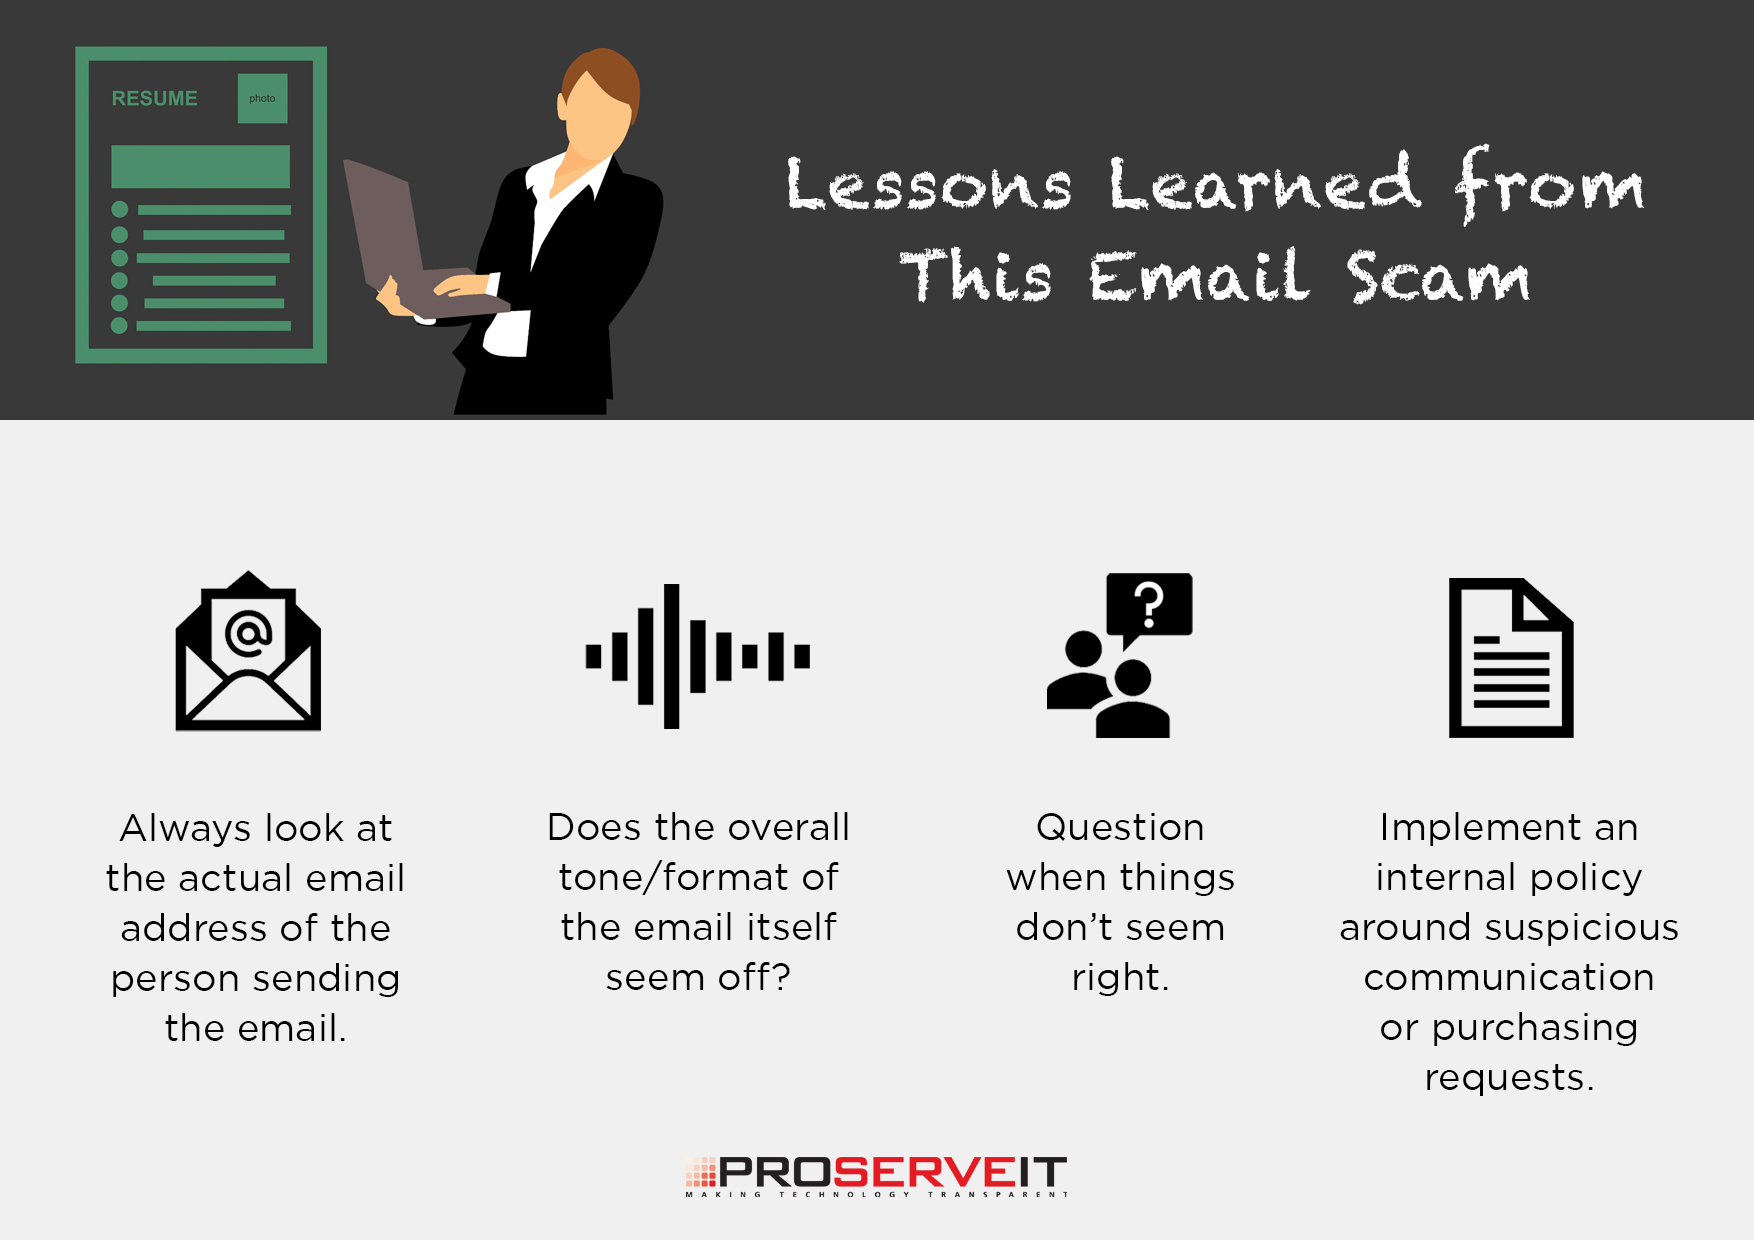 Email-Scam-Lessons